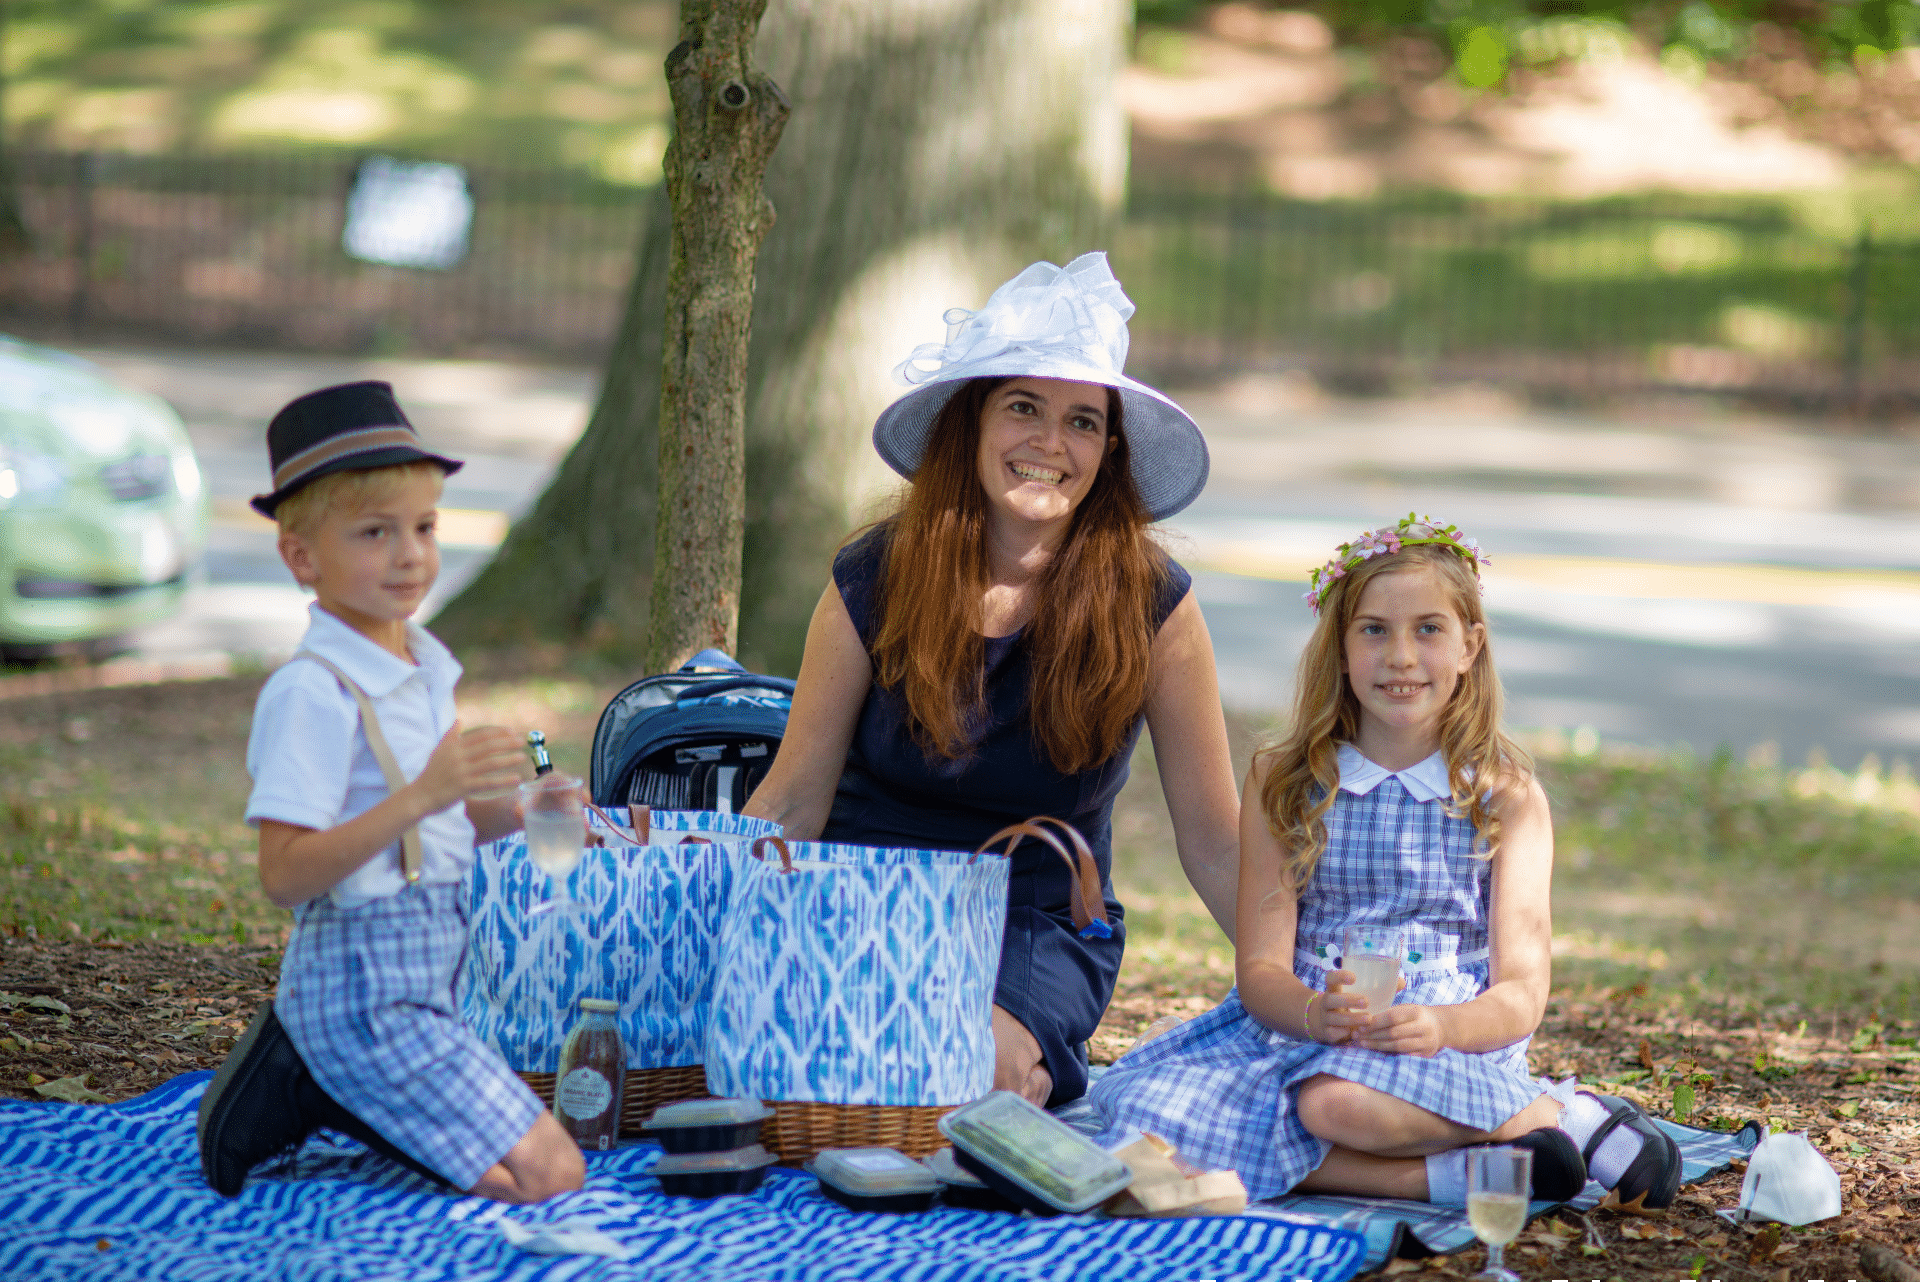 A mother and her two children at the Picnic In Your Park Event